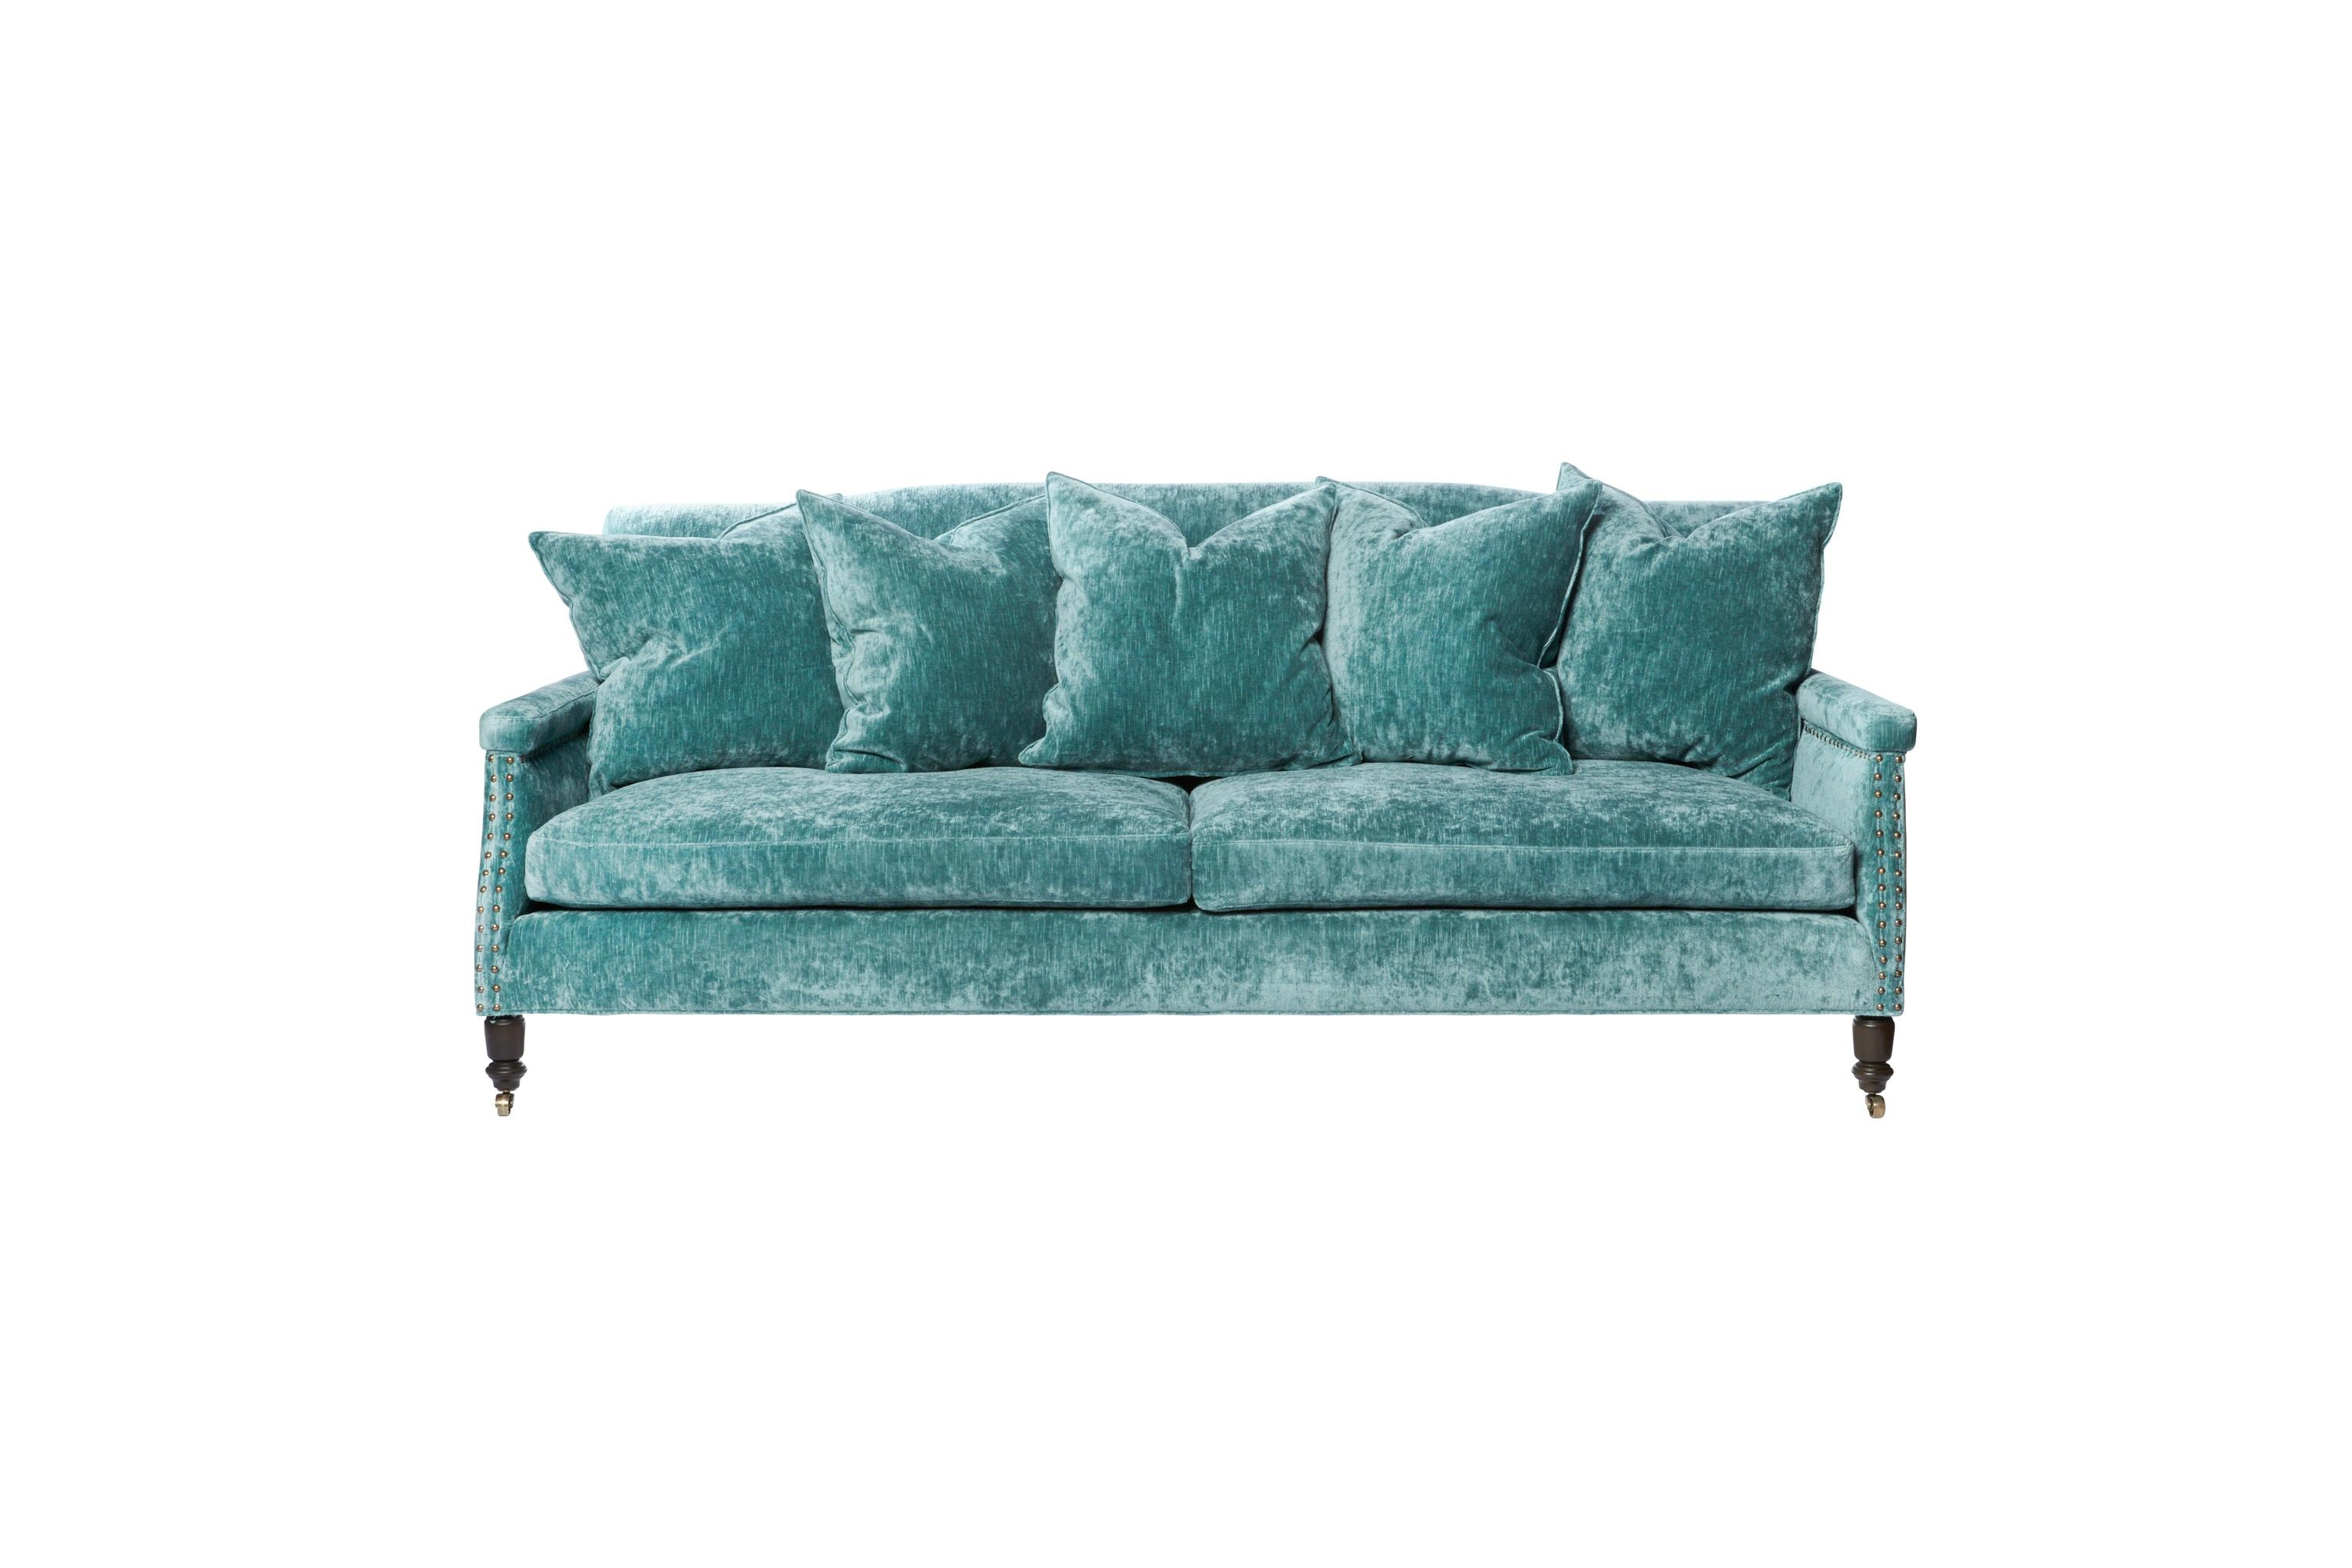 Sofas Pertaining To Teal Sofa Slipcovers (View 11 of 20)